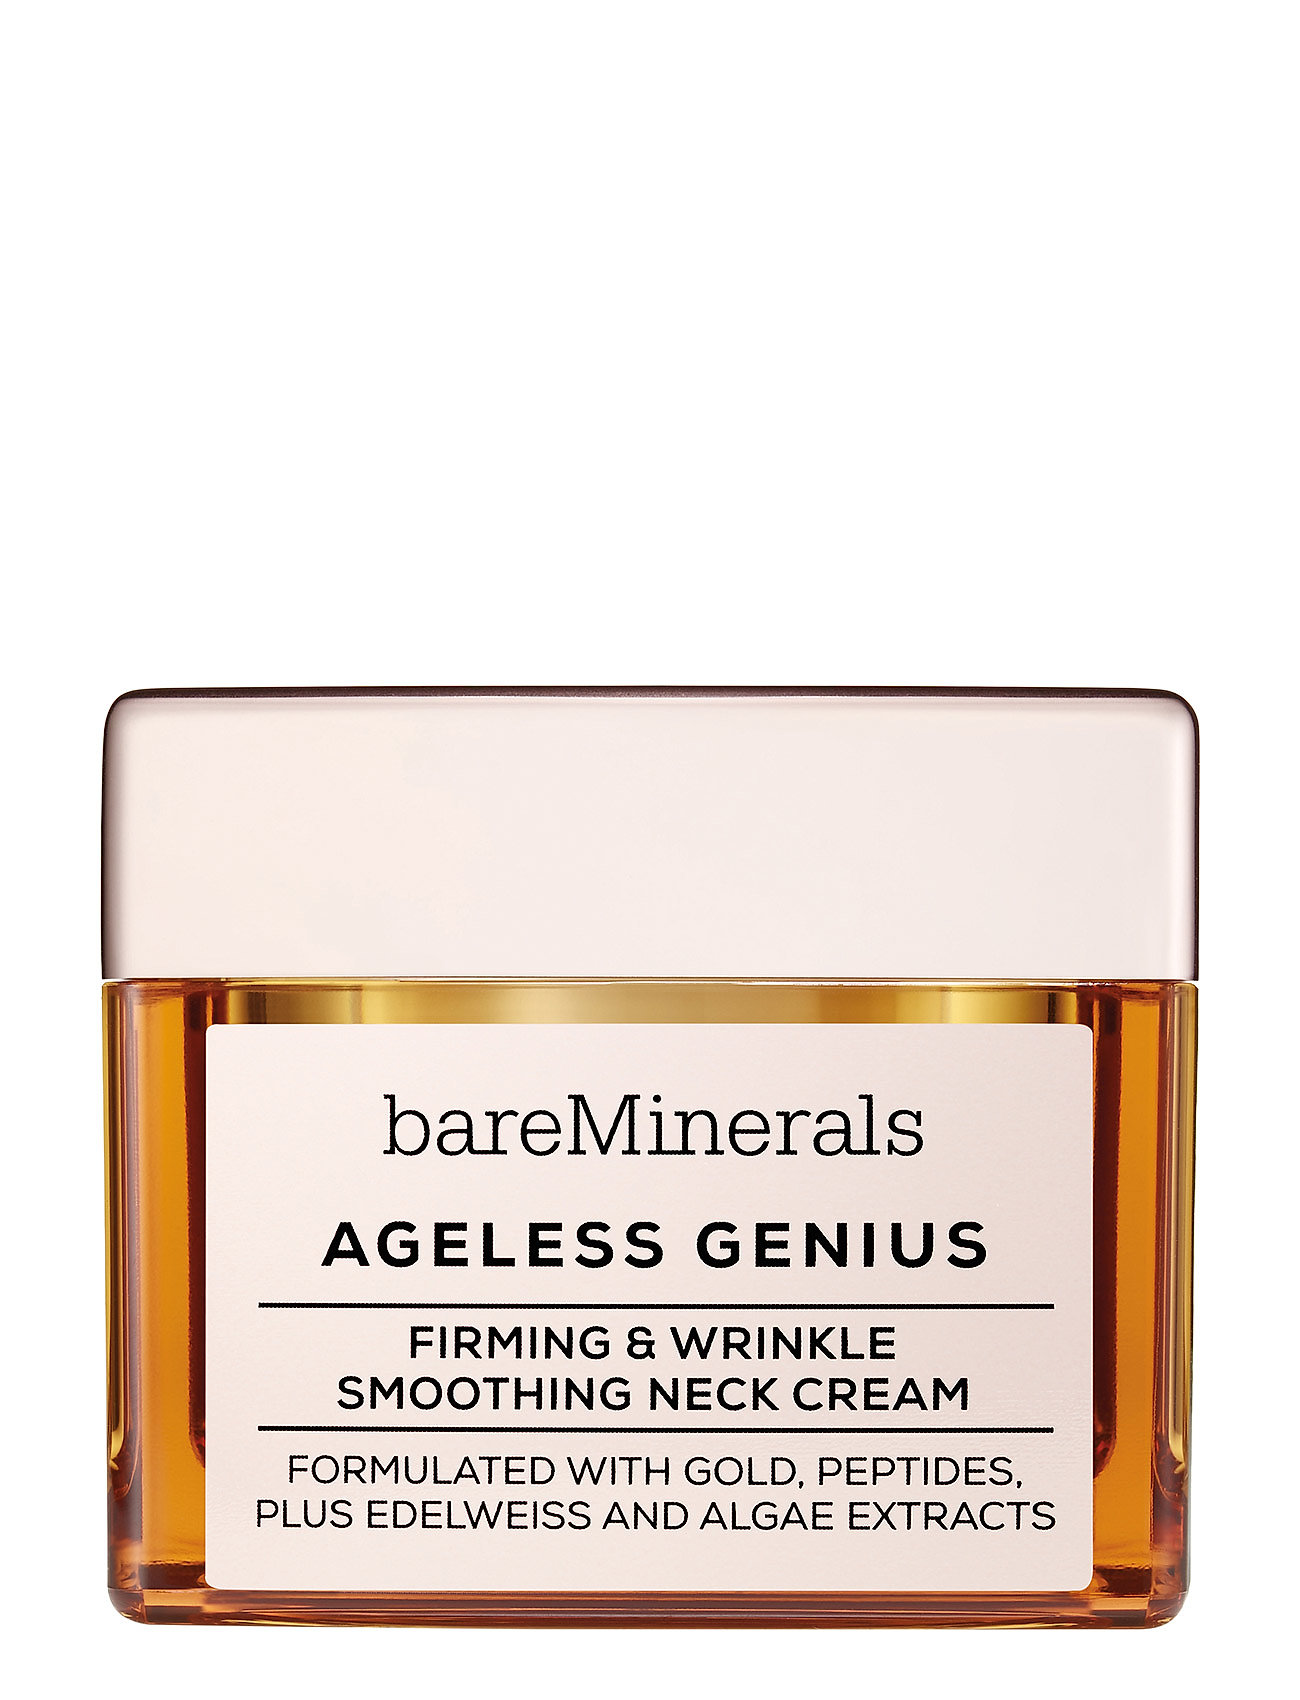 Image of Ageless Genius Firming & Wrinkle Smoothing Neck Cream Beauty WOMEN Skin Care Face Day Creams Nude BareMinerals (3409964035)